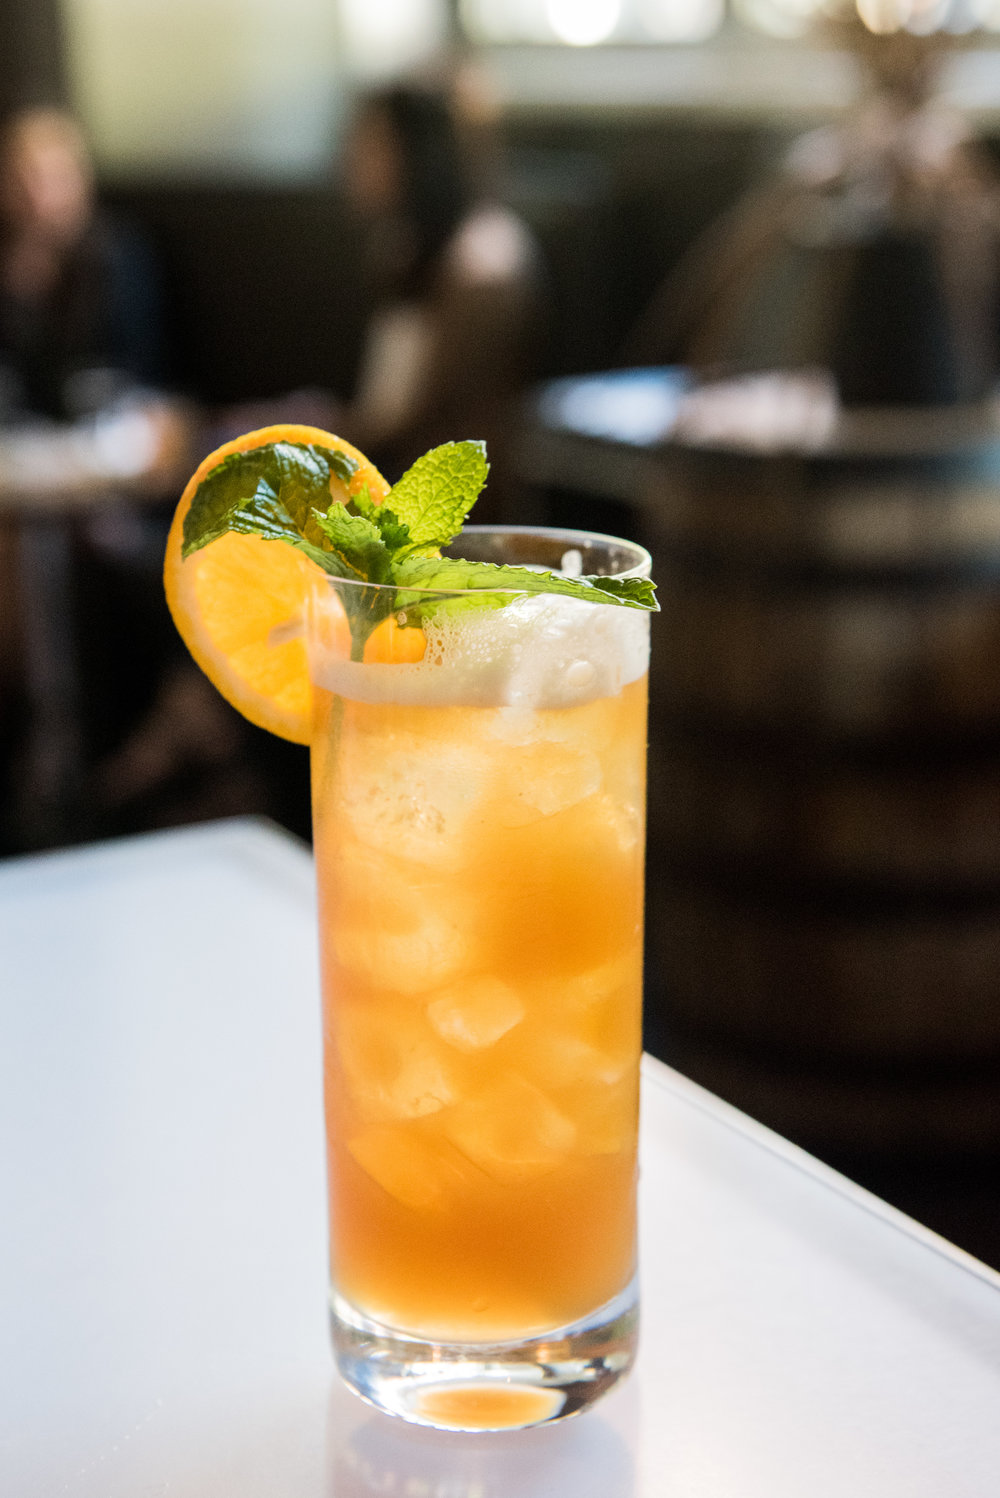 Carolina on My Mind - CH Bourbon, Mint, Peach, Lemon(Balanced tartness, hint of peach, bourbon shines through)